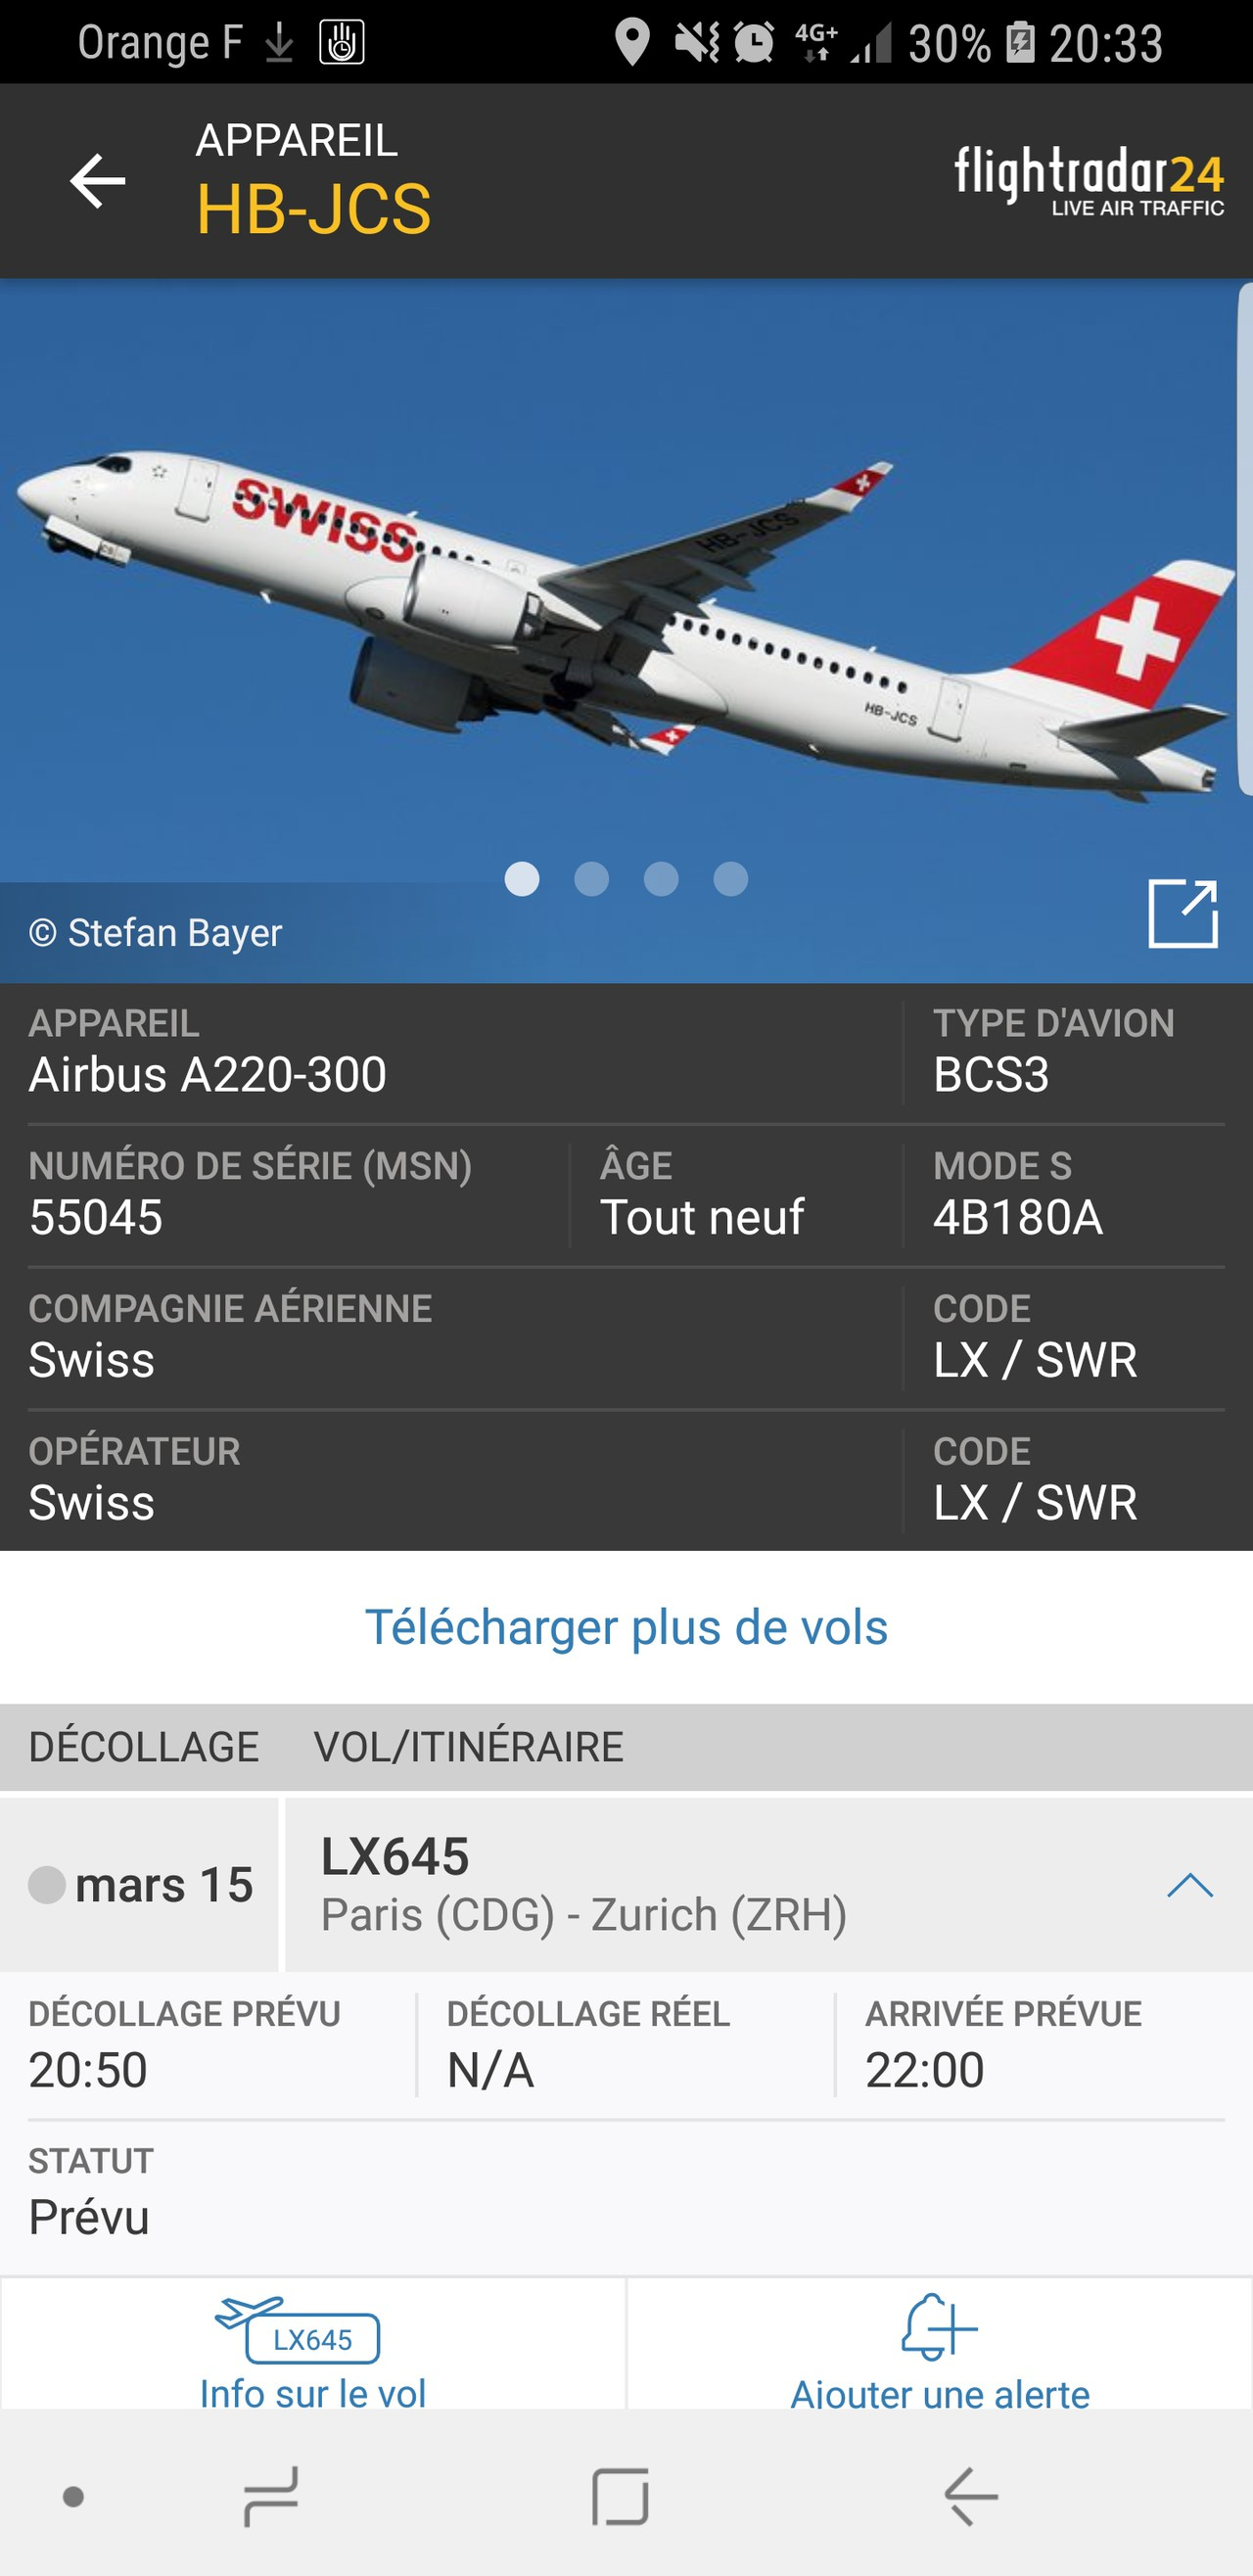 photo screenshot_20190315-203349_flightradar24